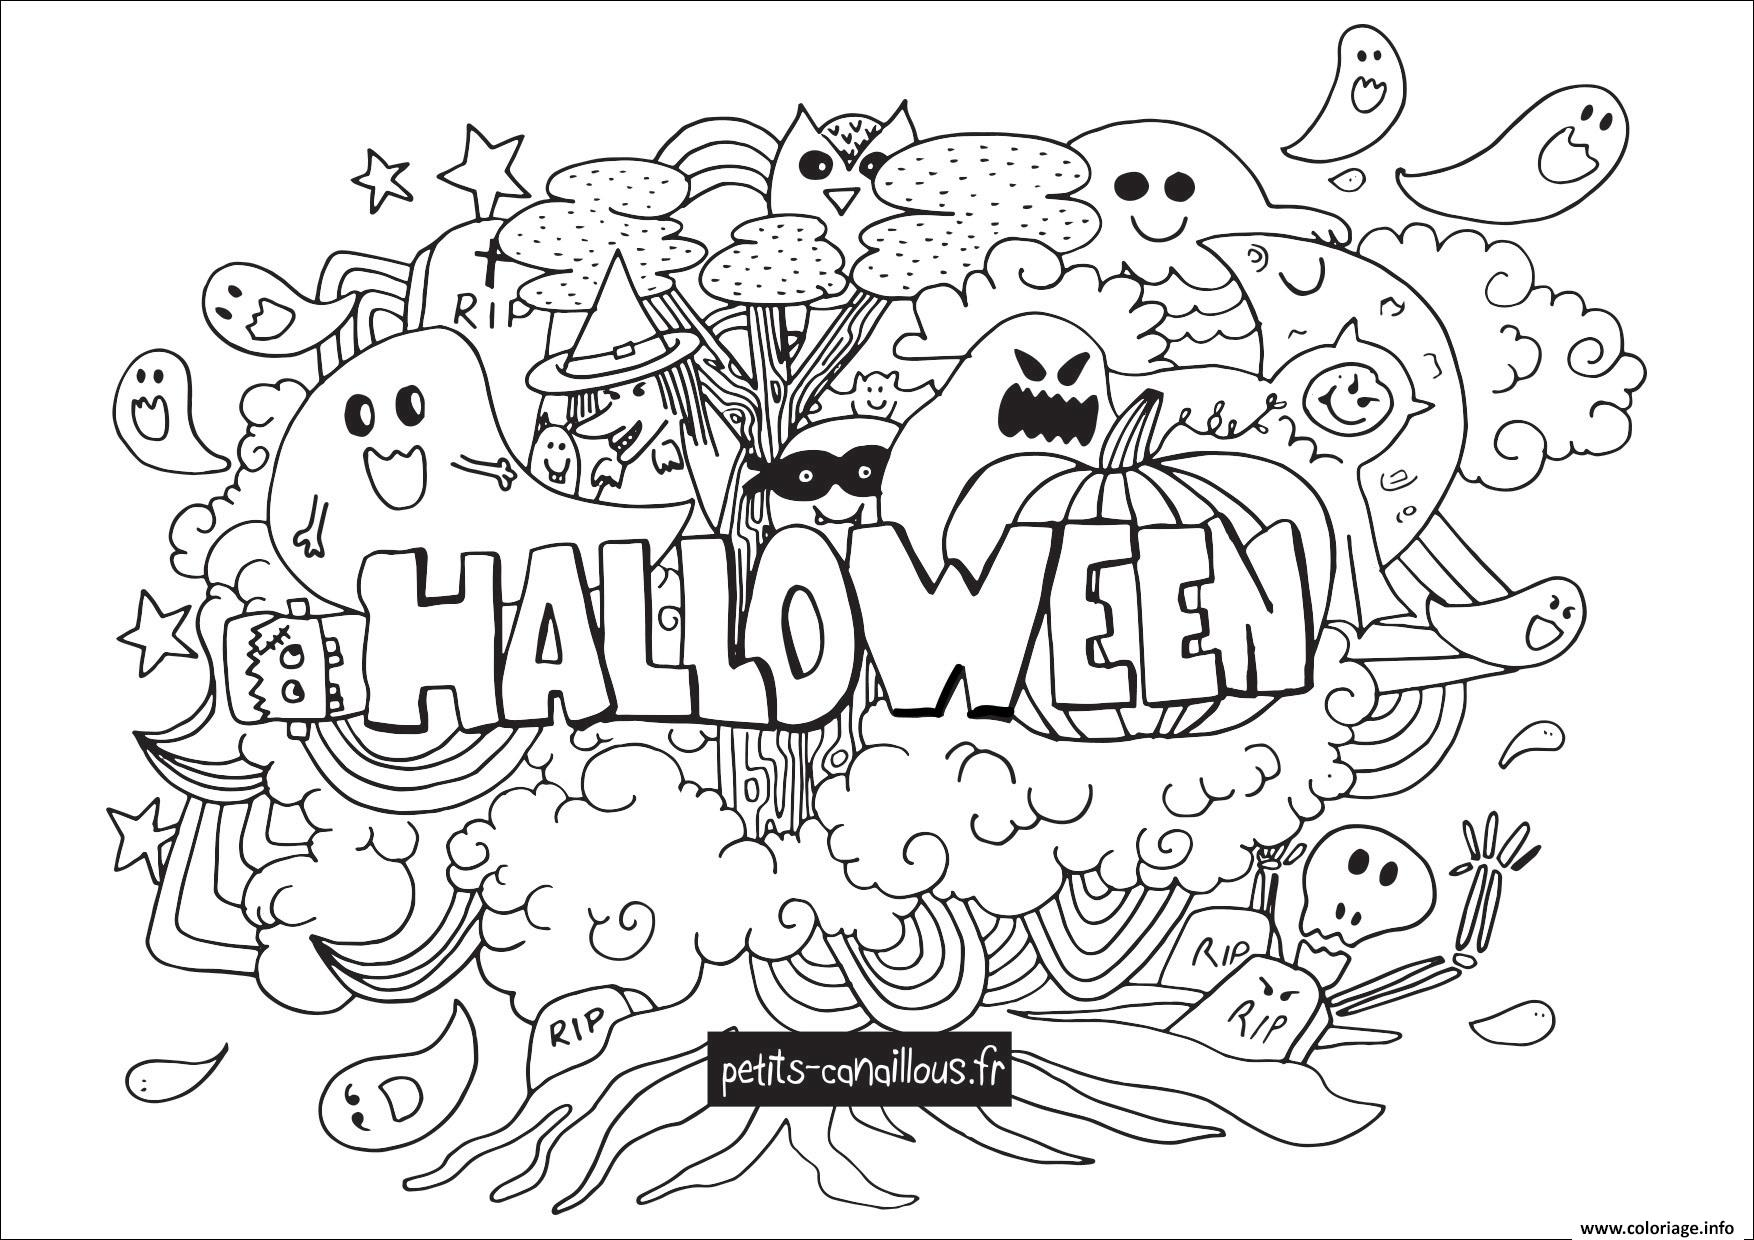 coloriage halloween doodle dessin. Black Bedroom Furniture Sets. Home Design Ideas